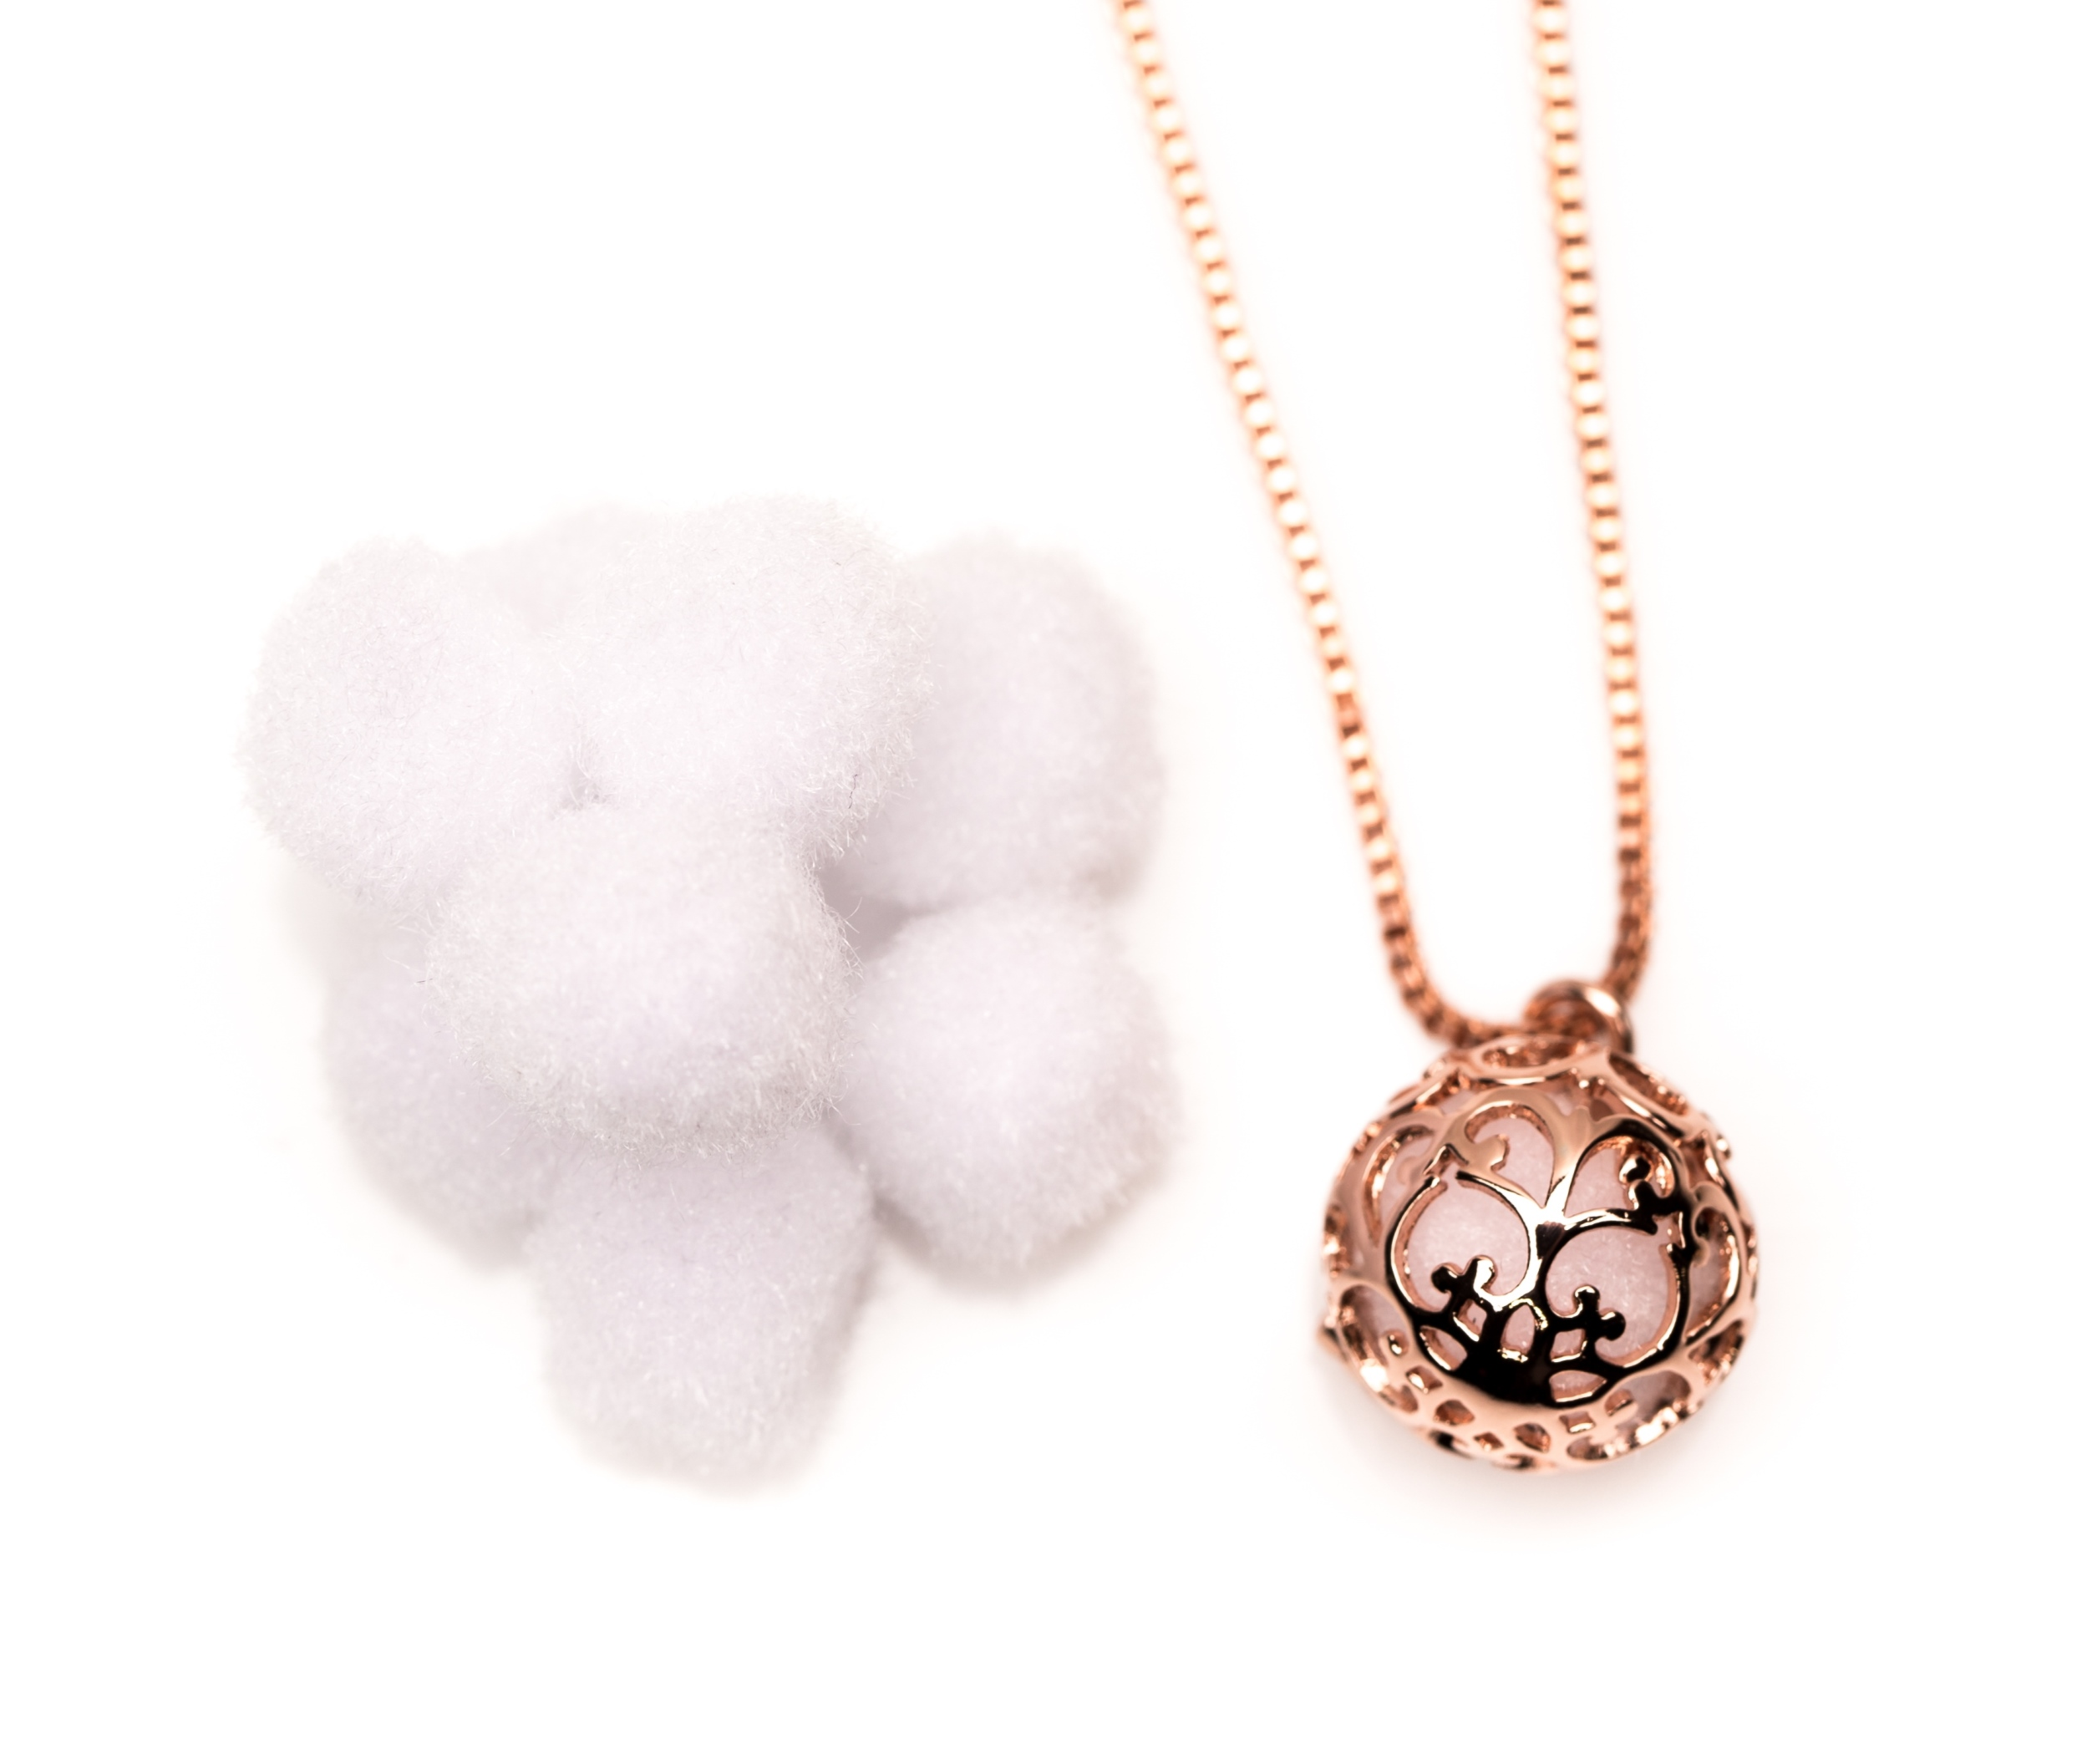 diffuser harmony products silver necklace ball oil diamond aromatherapy geometric essential img